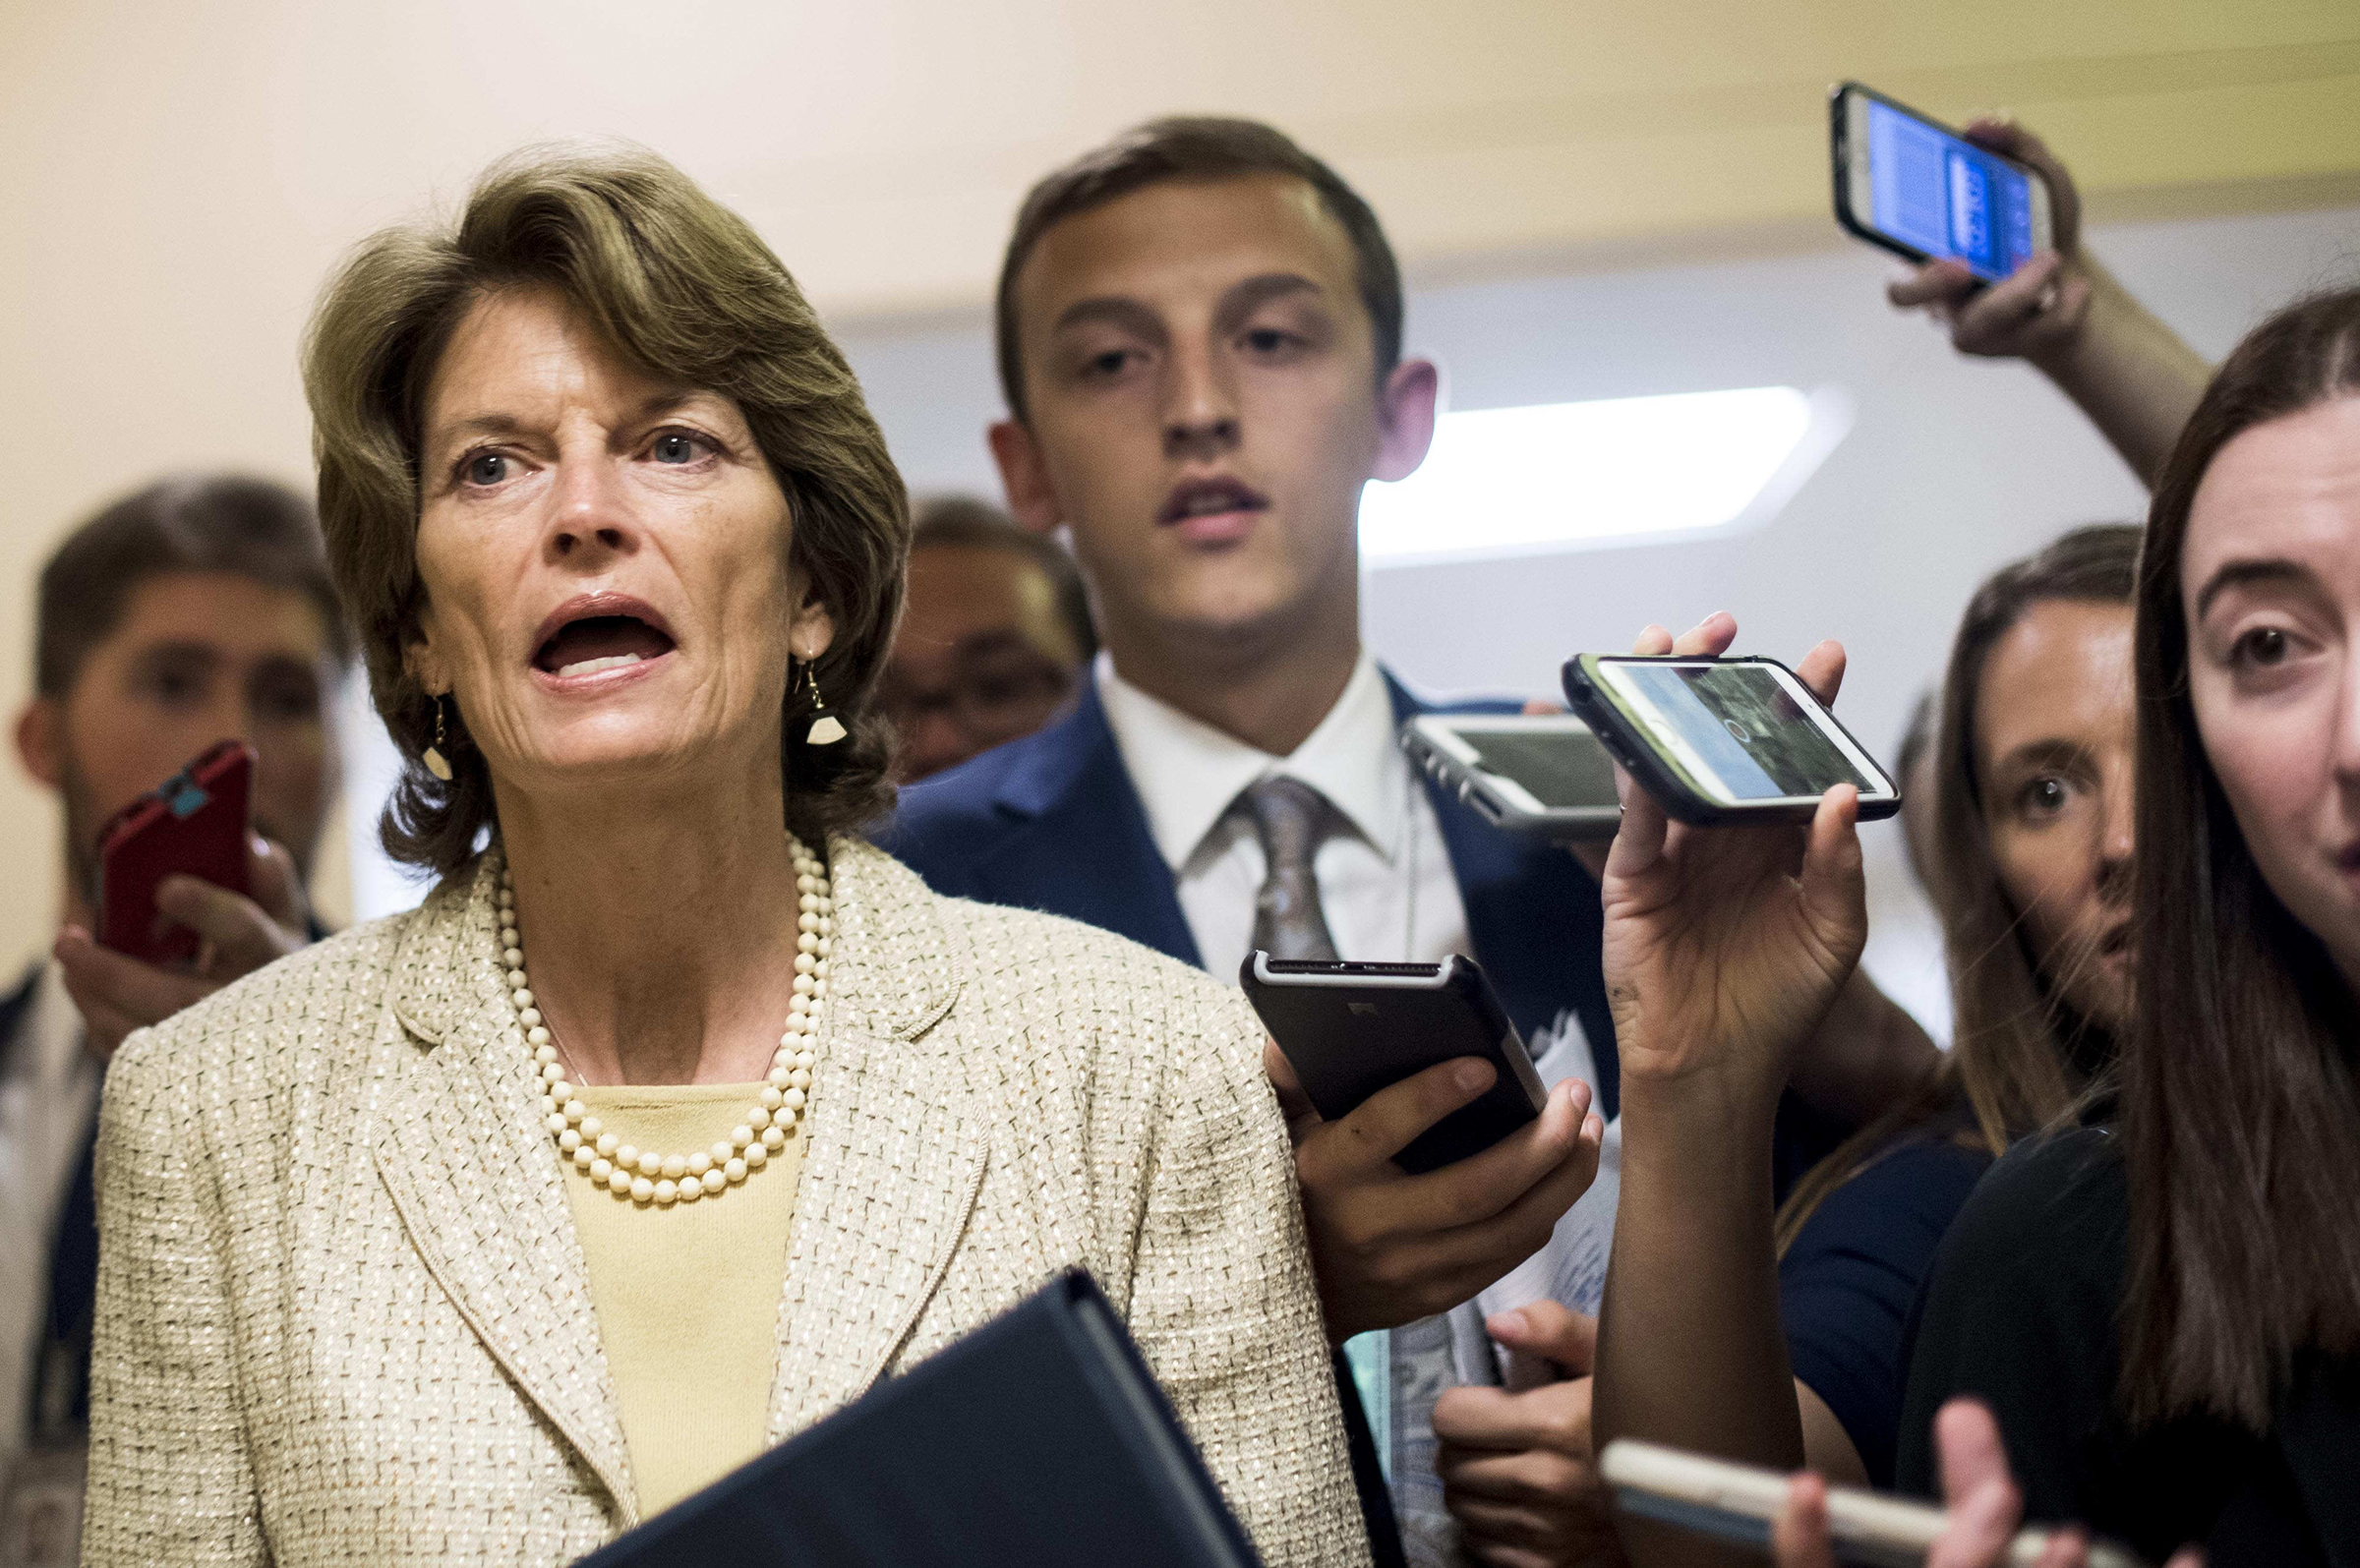 Sen. Lisa Murkowski answers questions from journalists while rushing to votes concerning the Republican version of the health care bill on Capitol Hill on Thursday. (Melina Mara / The Washington Post)